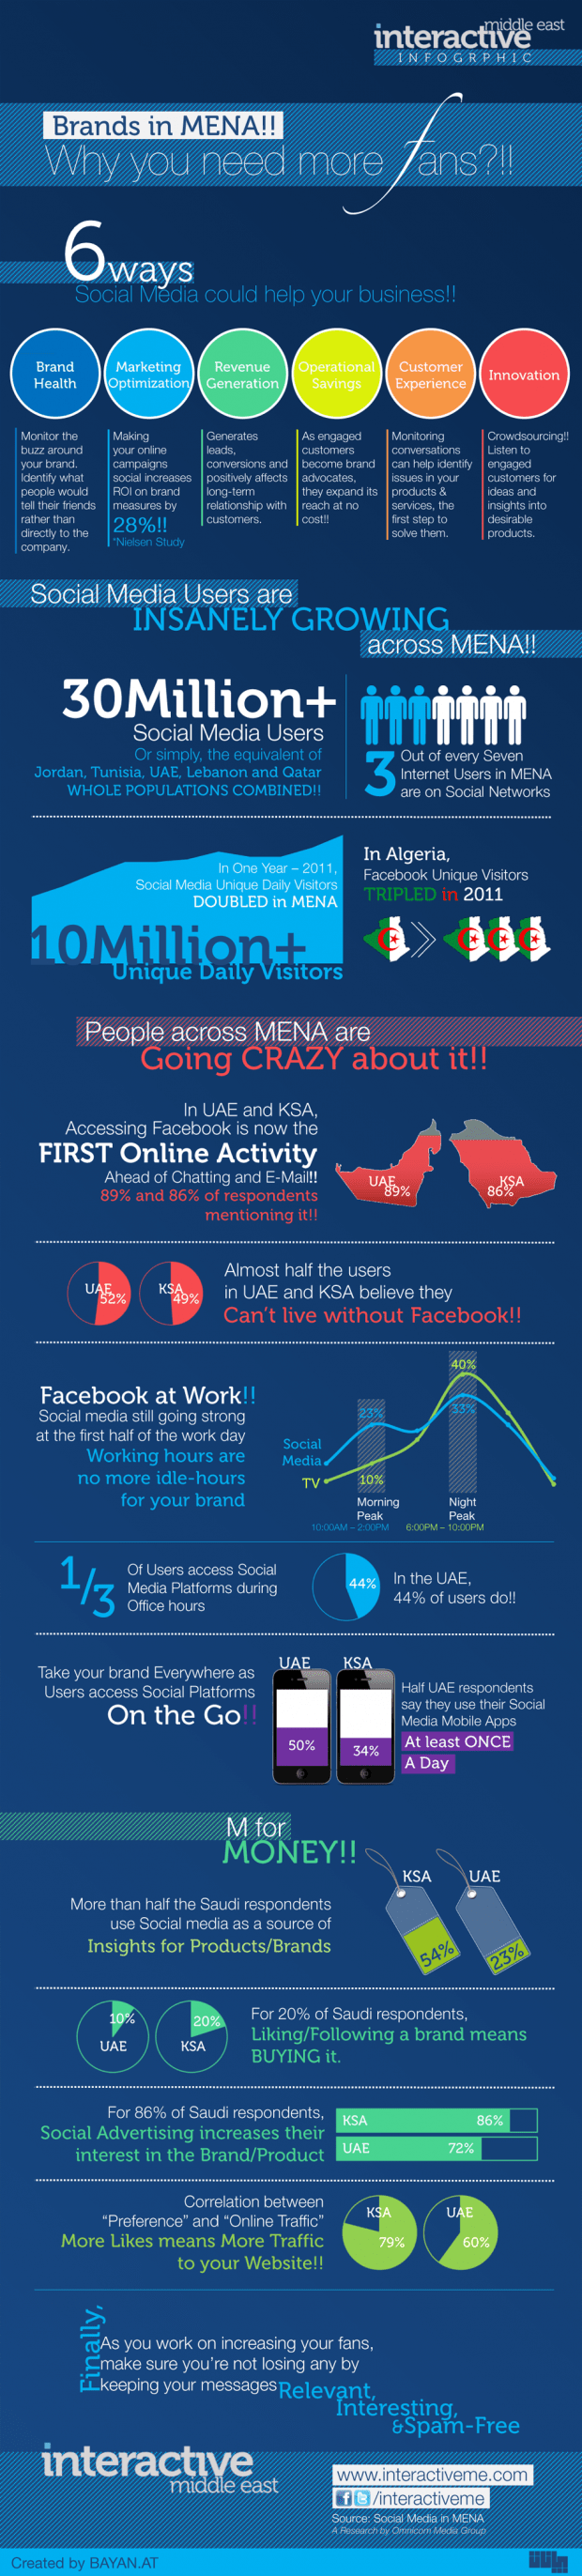 Social Media for Brands in MENA Infographic v1.0